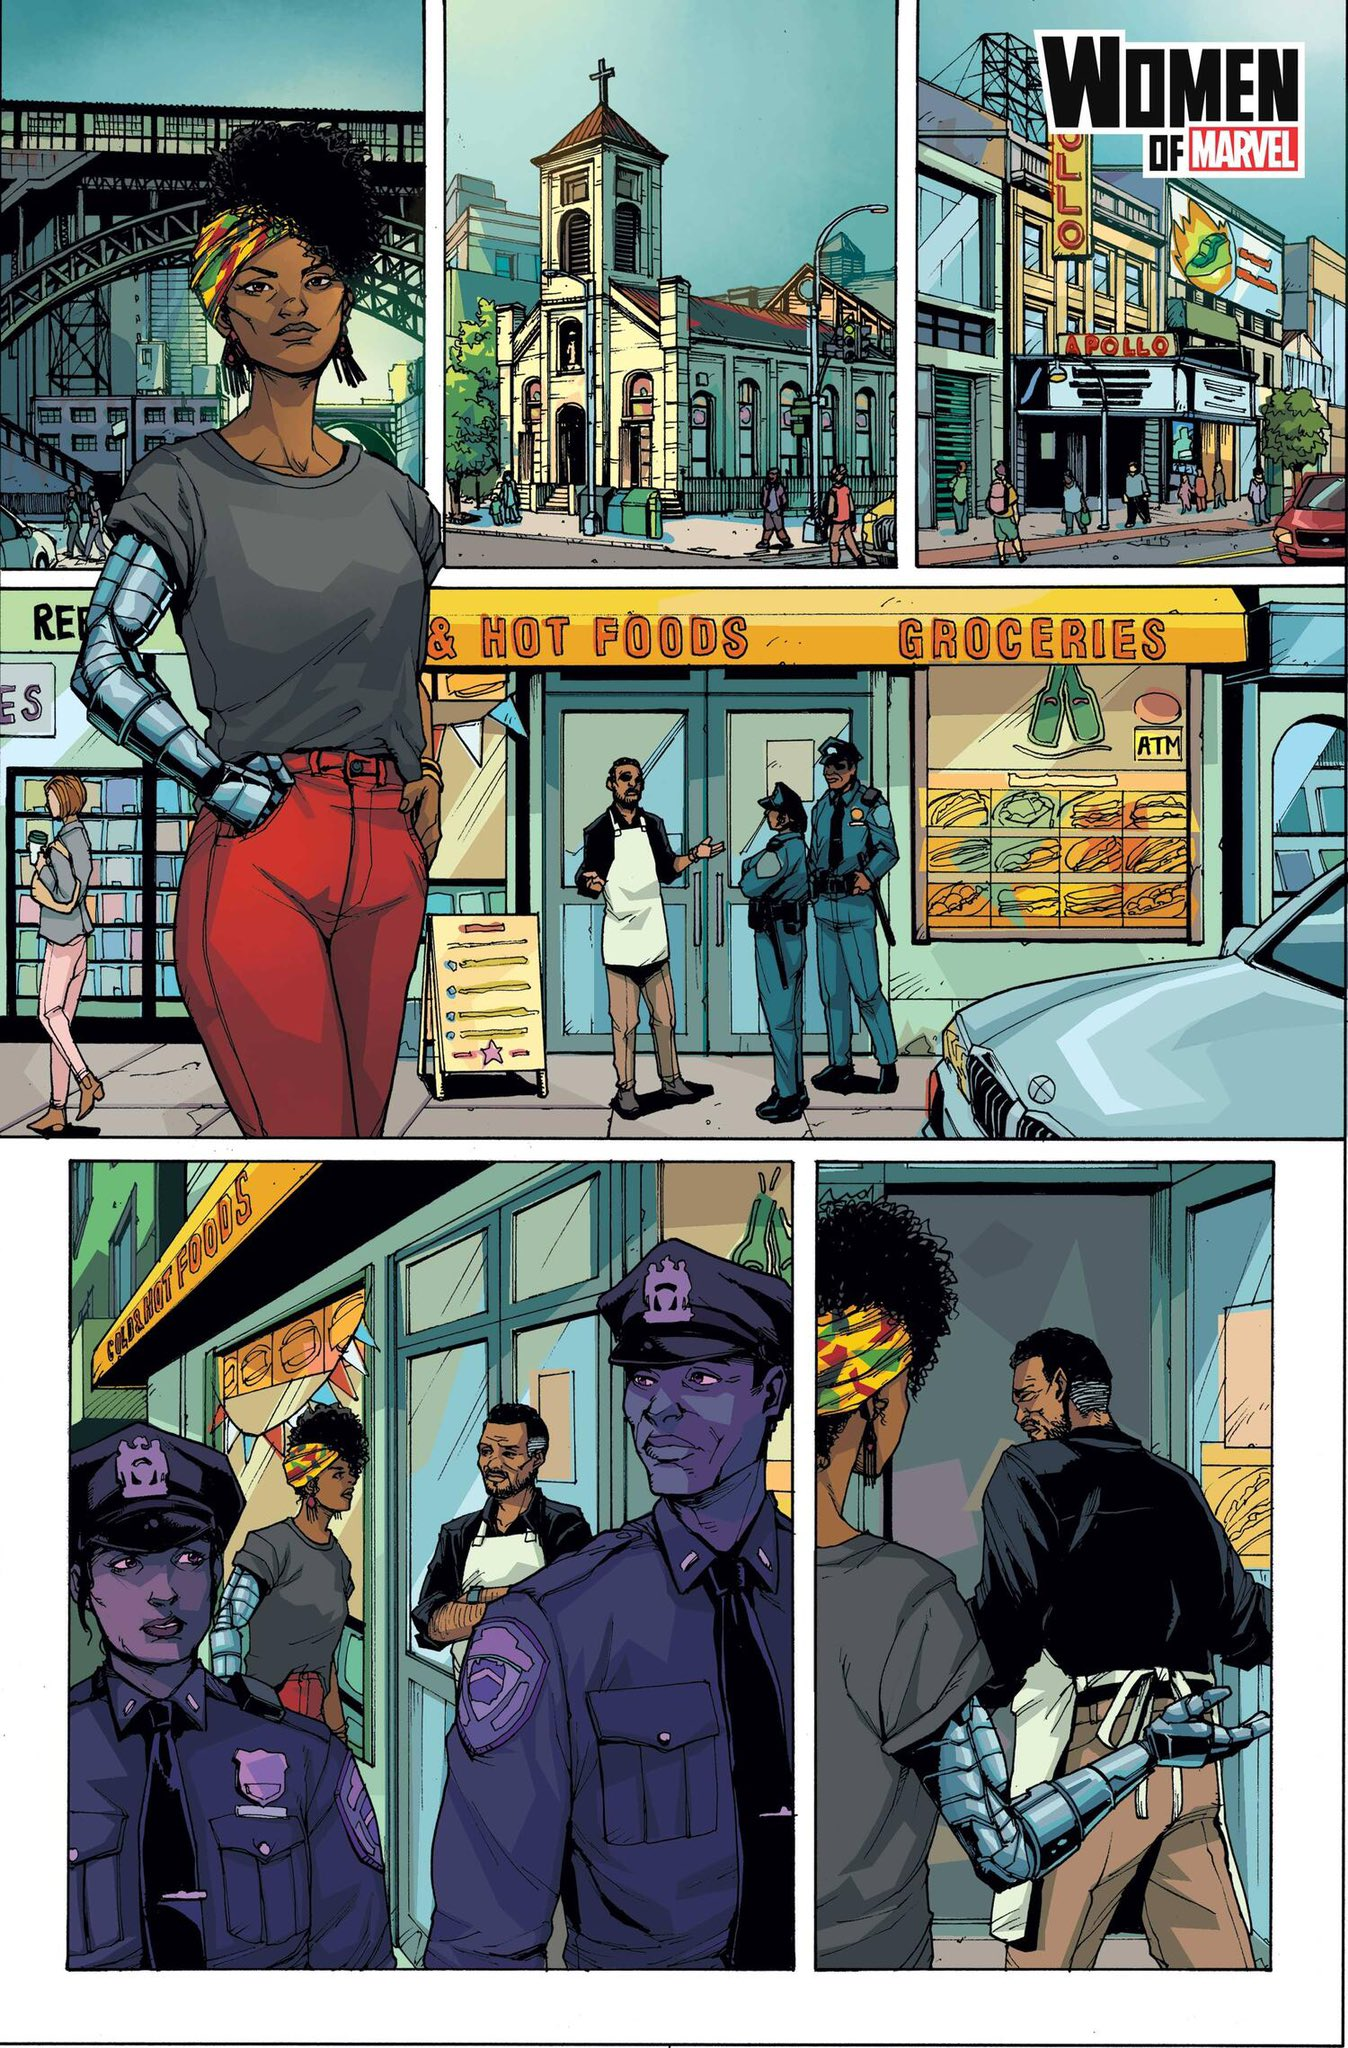 Misty Knight walks along Harlem streets and notices police outside a deli.